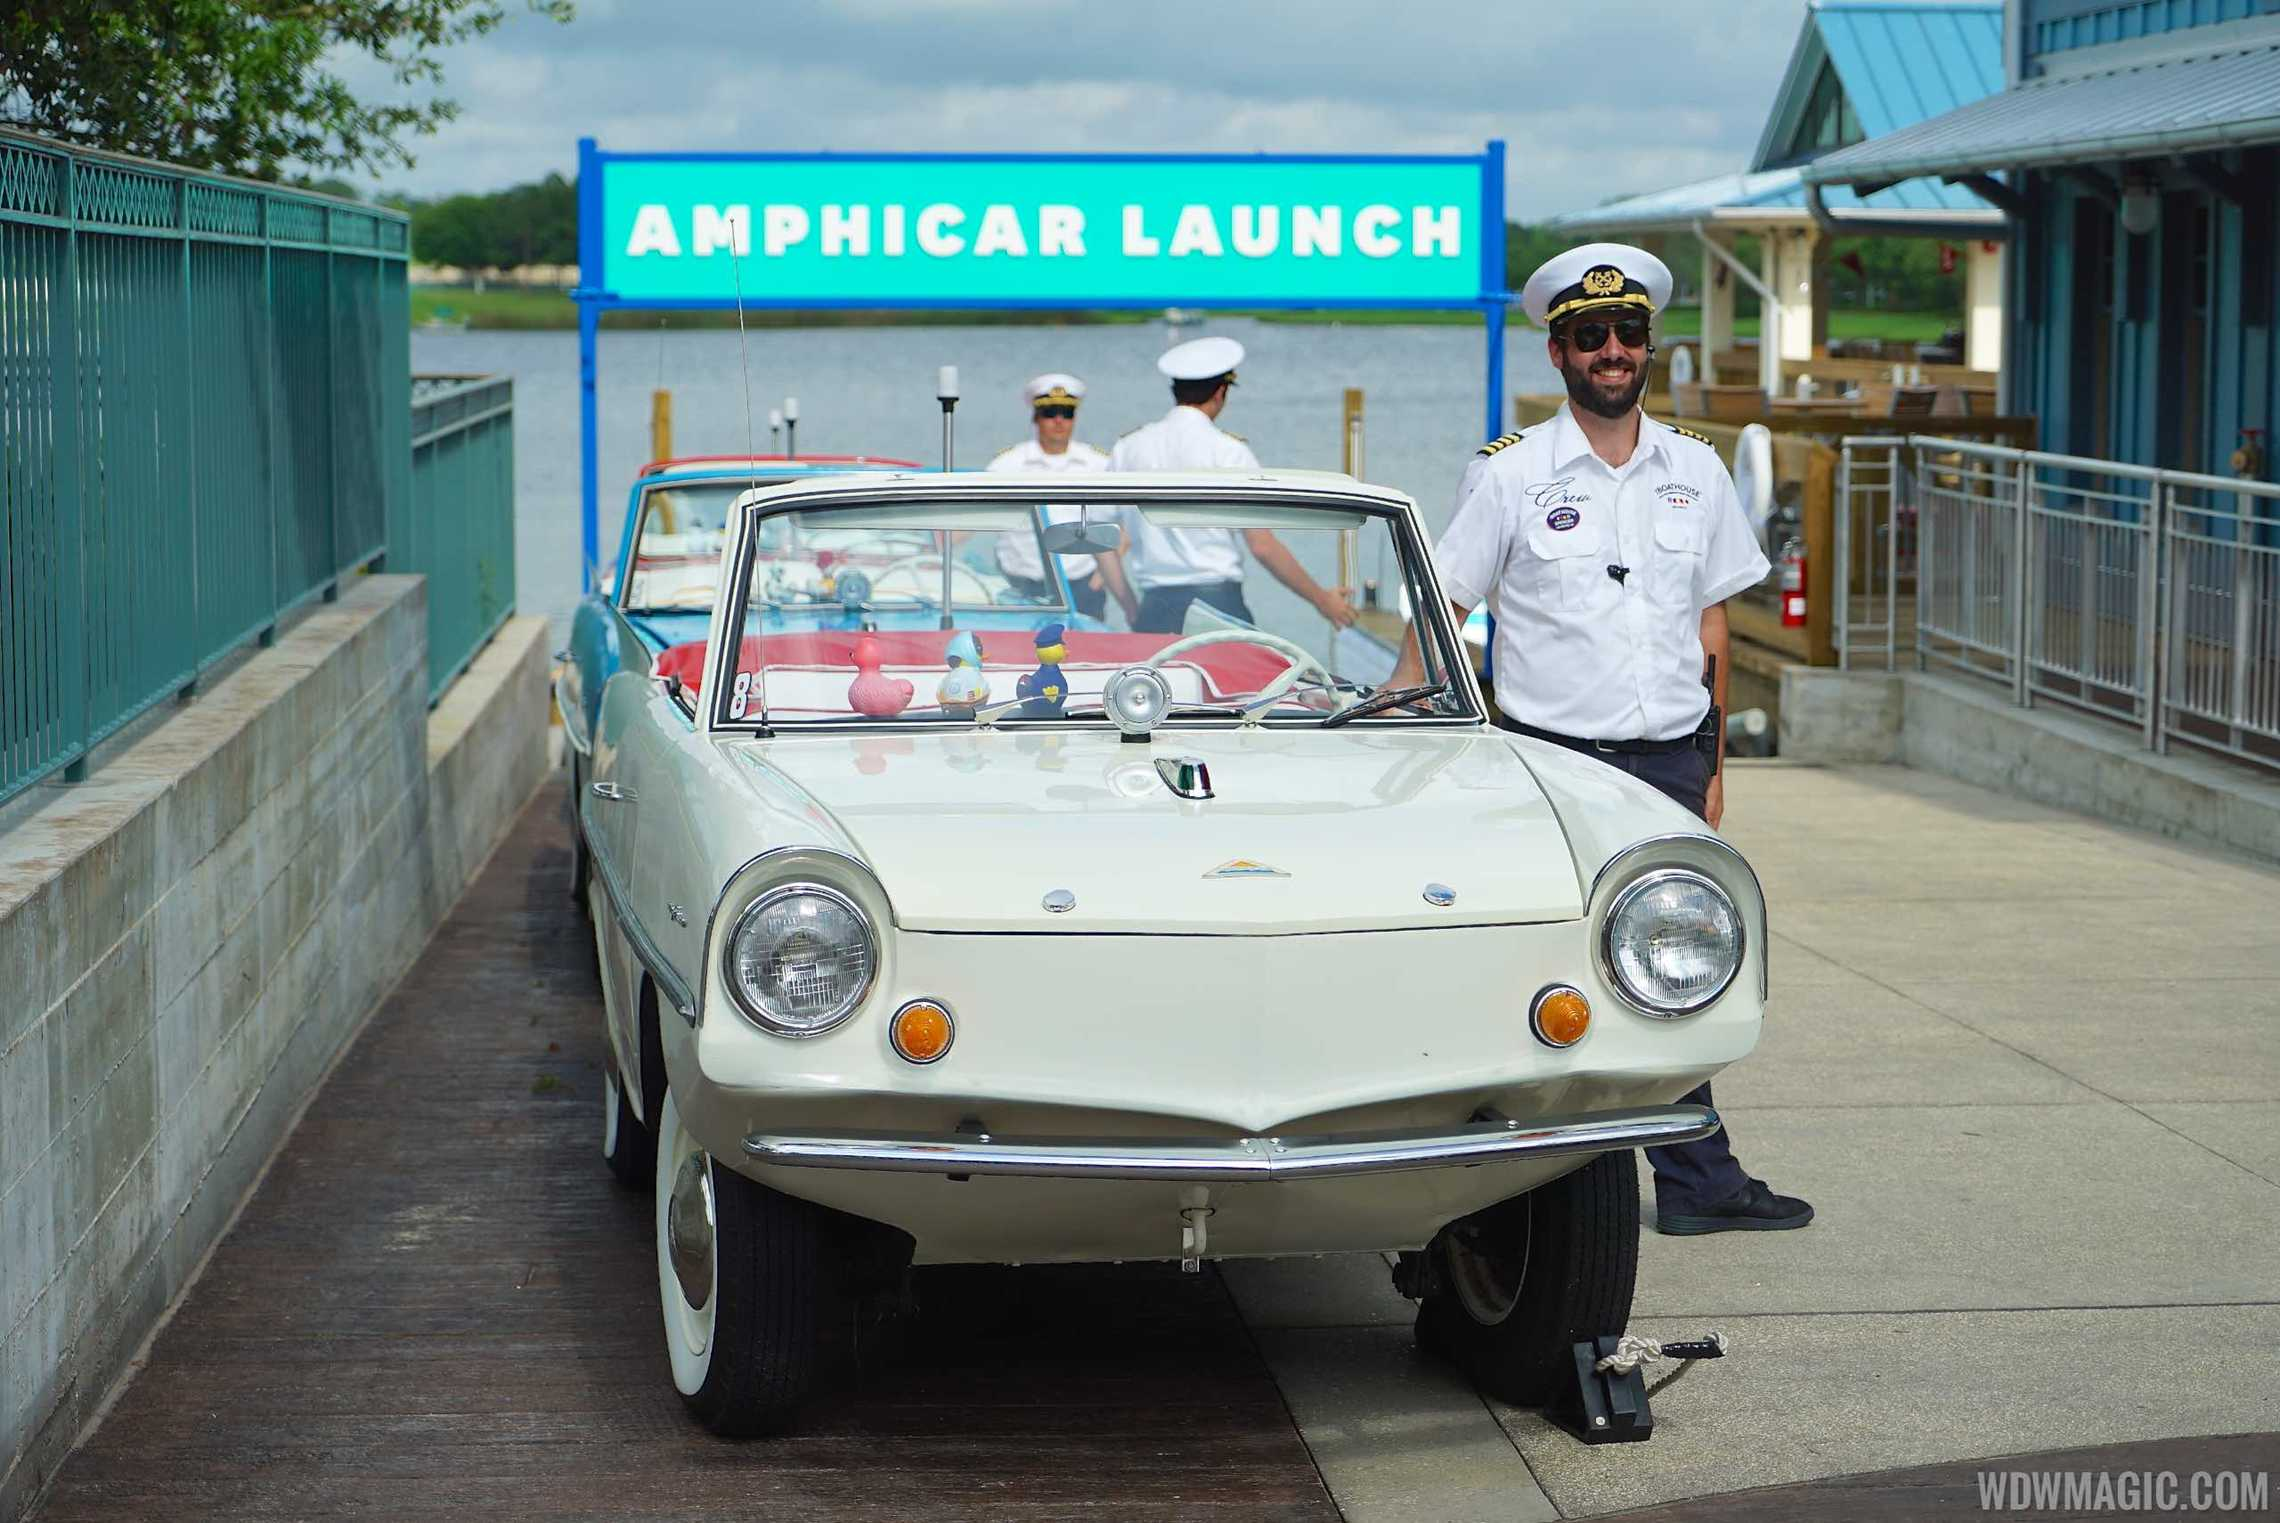 The BOATHOUSE - Amphicar launch area